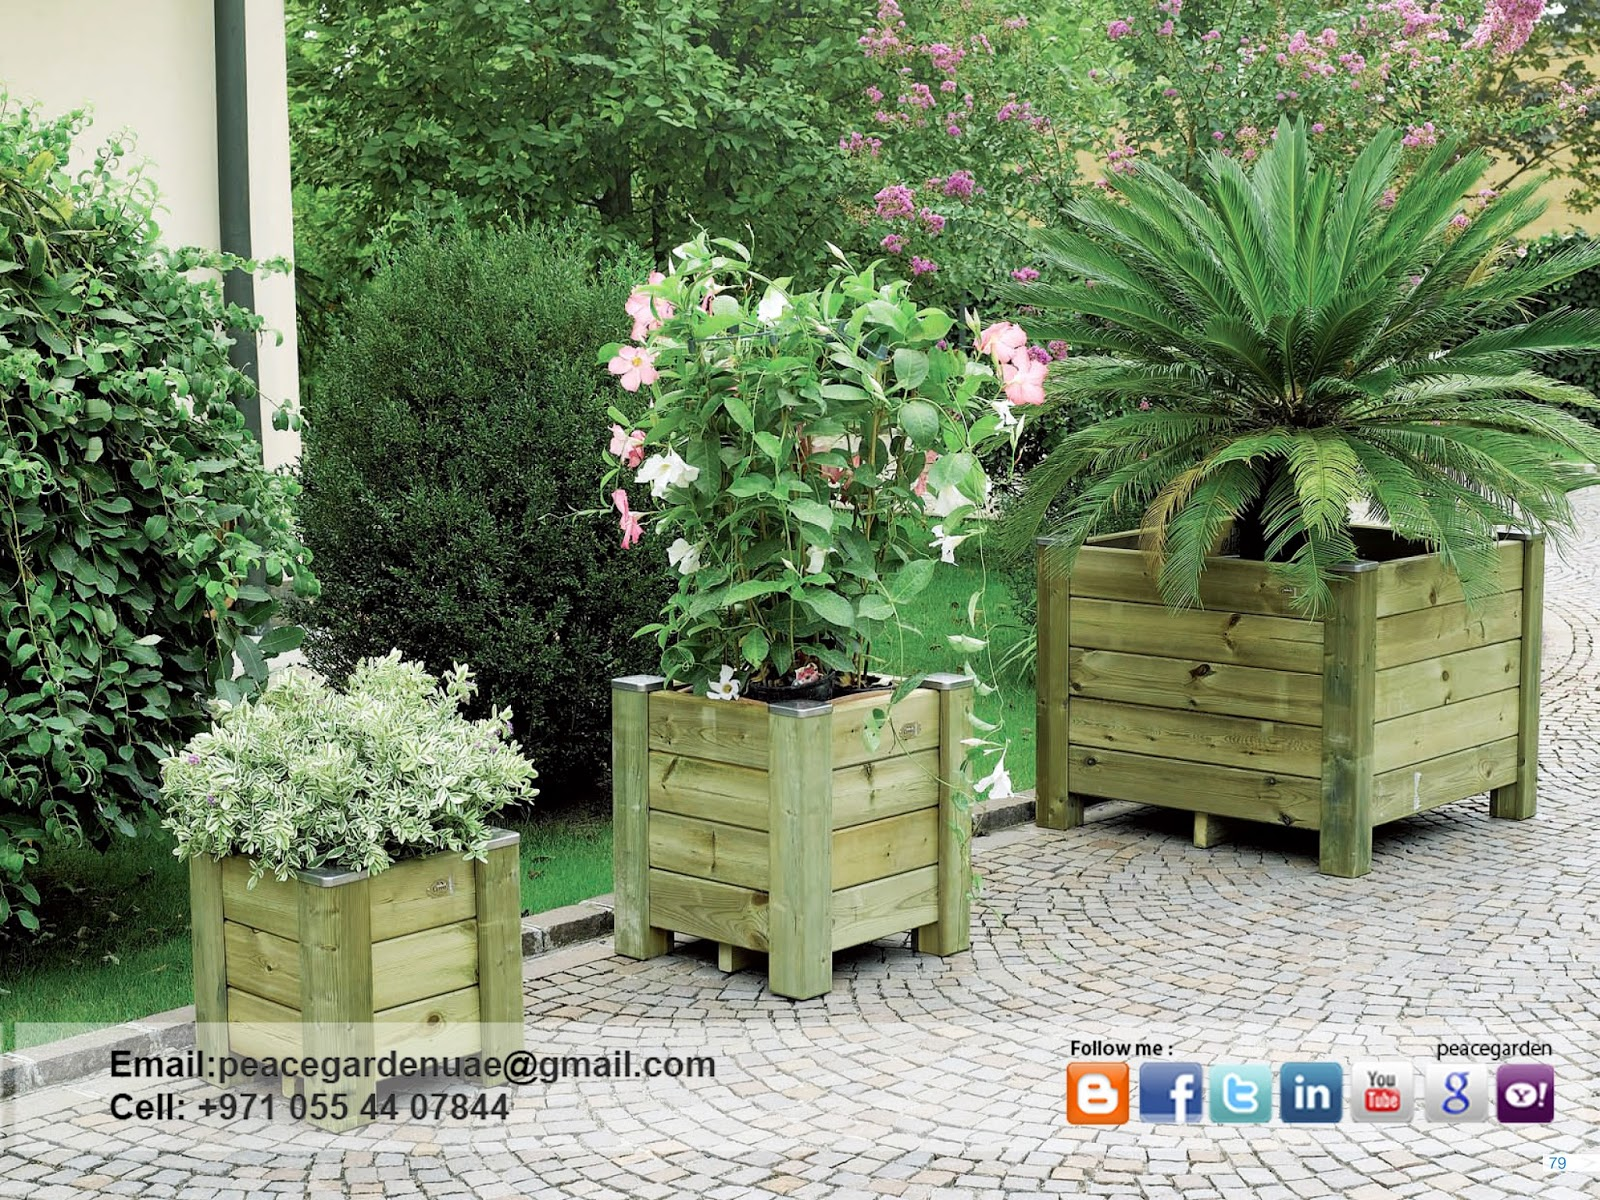 We Are Peace Garden We Design And Manufacturer All Types Wooden Furniture  In Uae,Like Wooden Planters,Garden Planters,Wooden Post Manufacturer ,Garden  ...